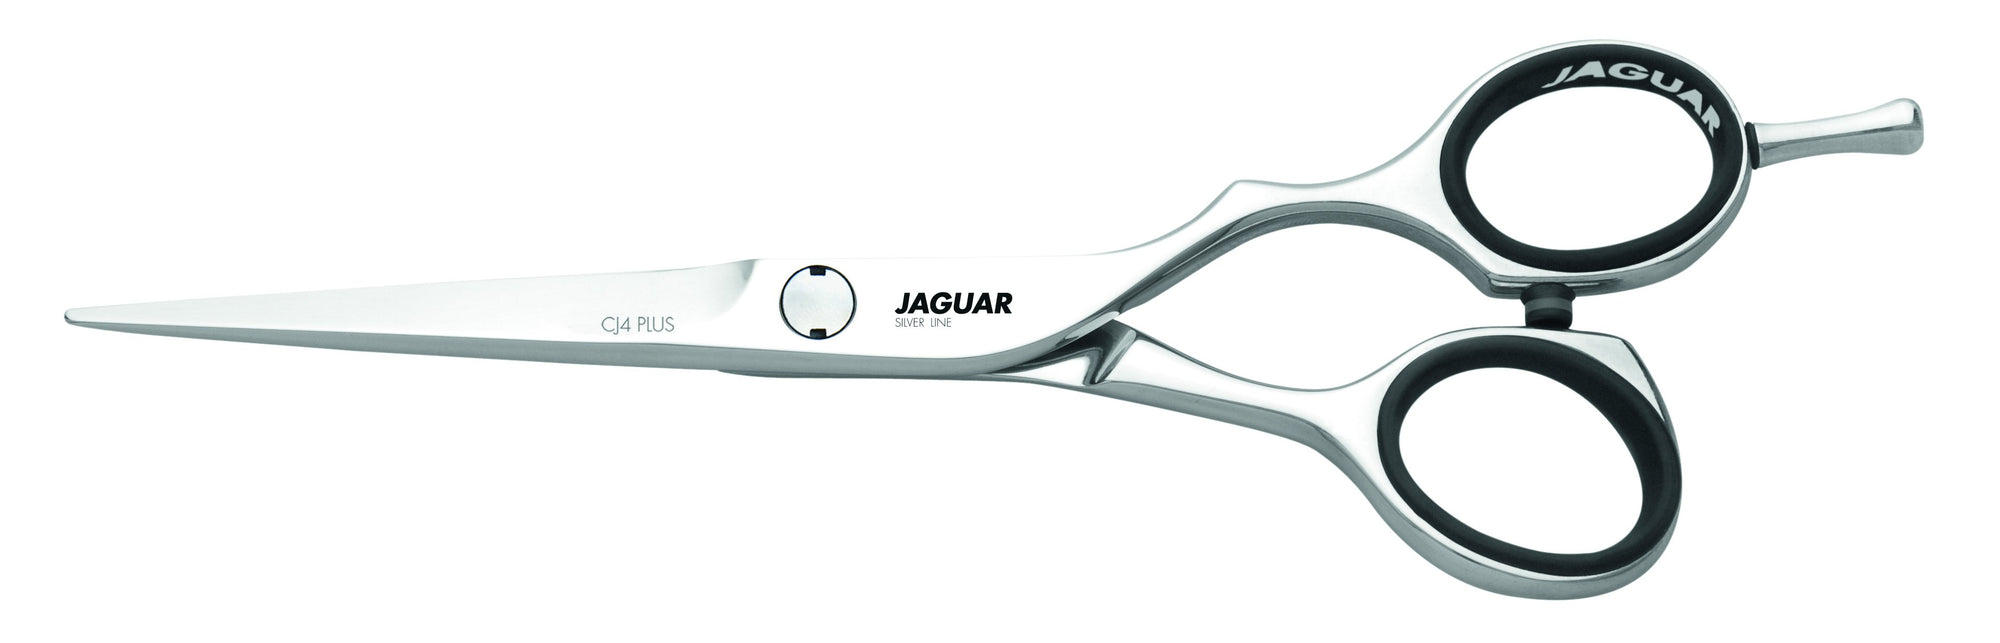 Jaguar CJ4 Plus (4396638109779)